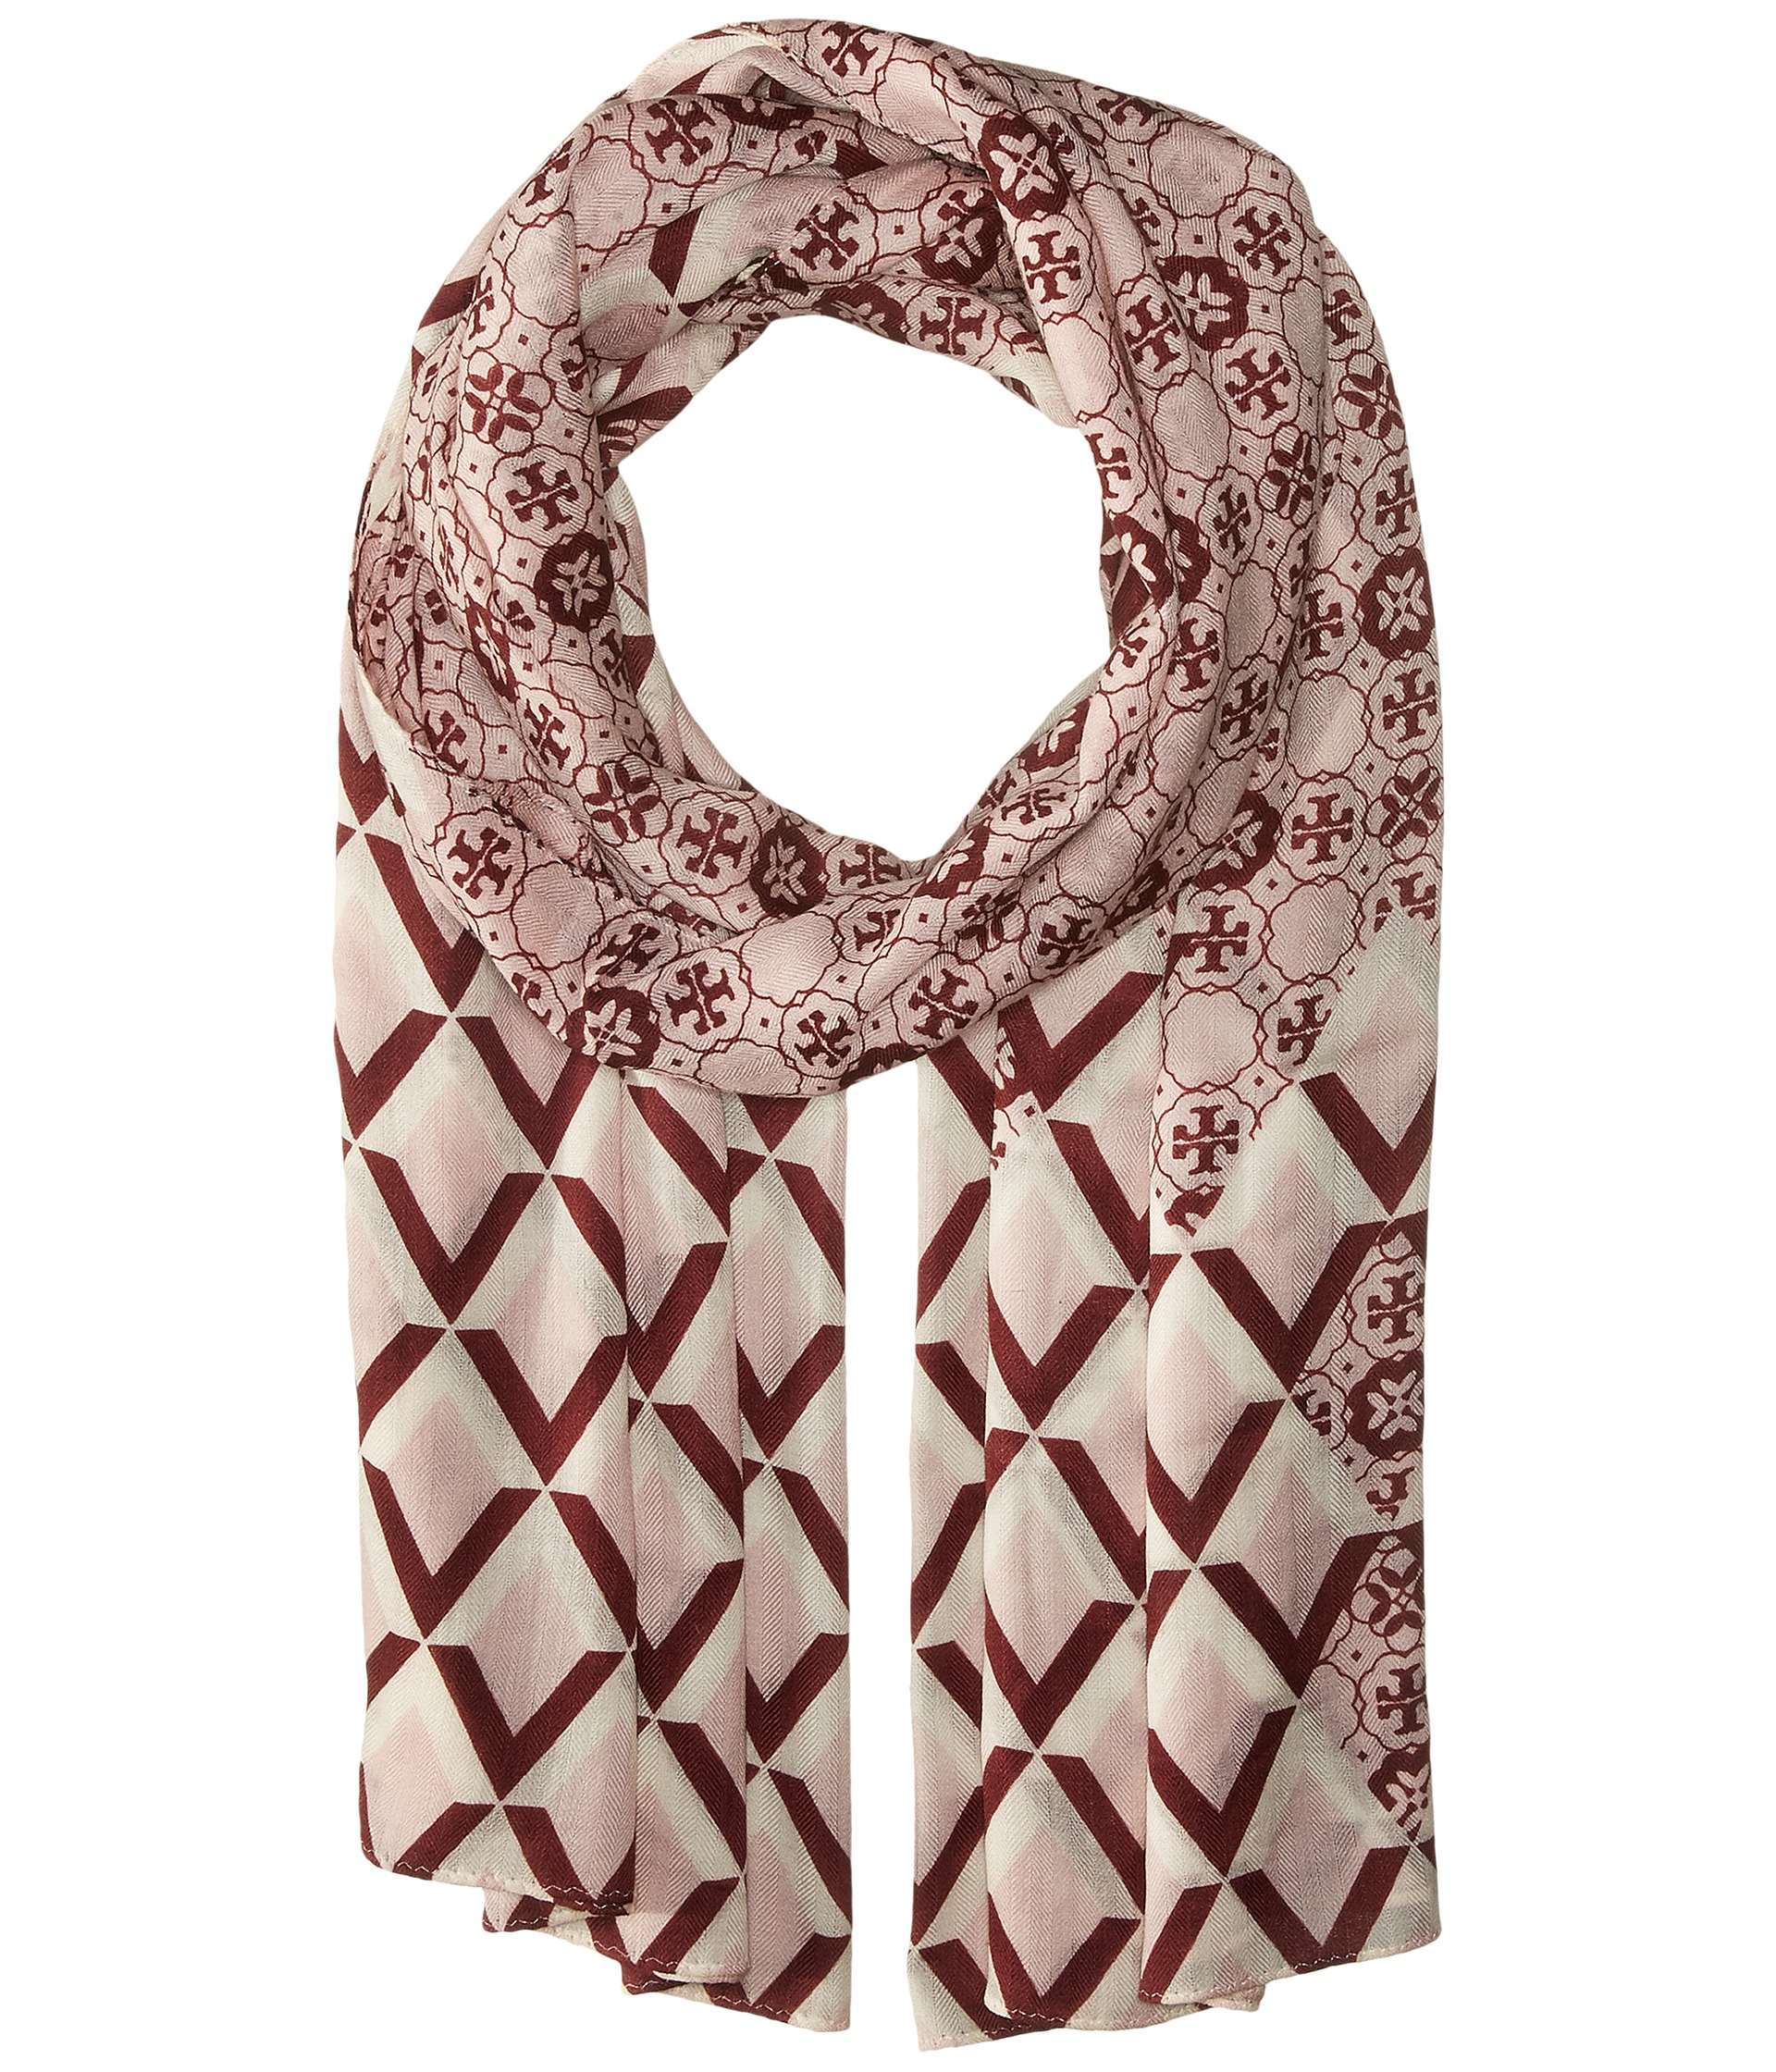 Tory Burch Logo Mosaic and Signature Print Oblong - Zappos.com Free ...